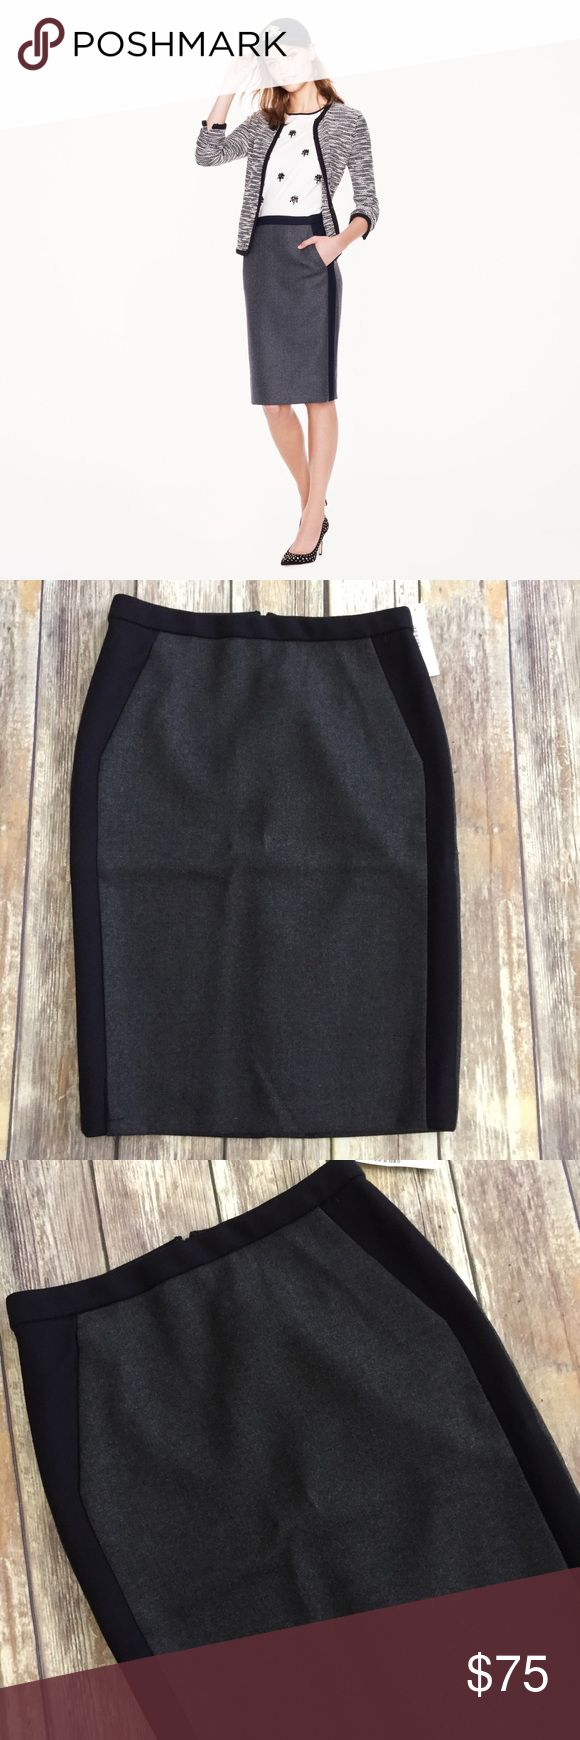 """NWT J Crew No 2 Pencil Skirt with Pockets Brand new with tags J Crew """"No 2 Pencil Skirt in Tipped Double Surge Wool"""". Gray and very dark navy blue. Front pockets. Fully lined. Back Zip. Approximate length is 23.5"""". ⚓No trades or holds. I negotiate only through the offer button. Any measurements listed are approximate since I am not a seamstress. HB J. Crew Skirts Midi"""